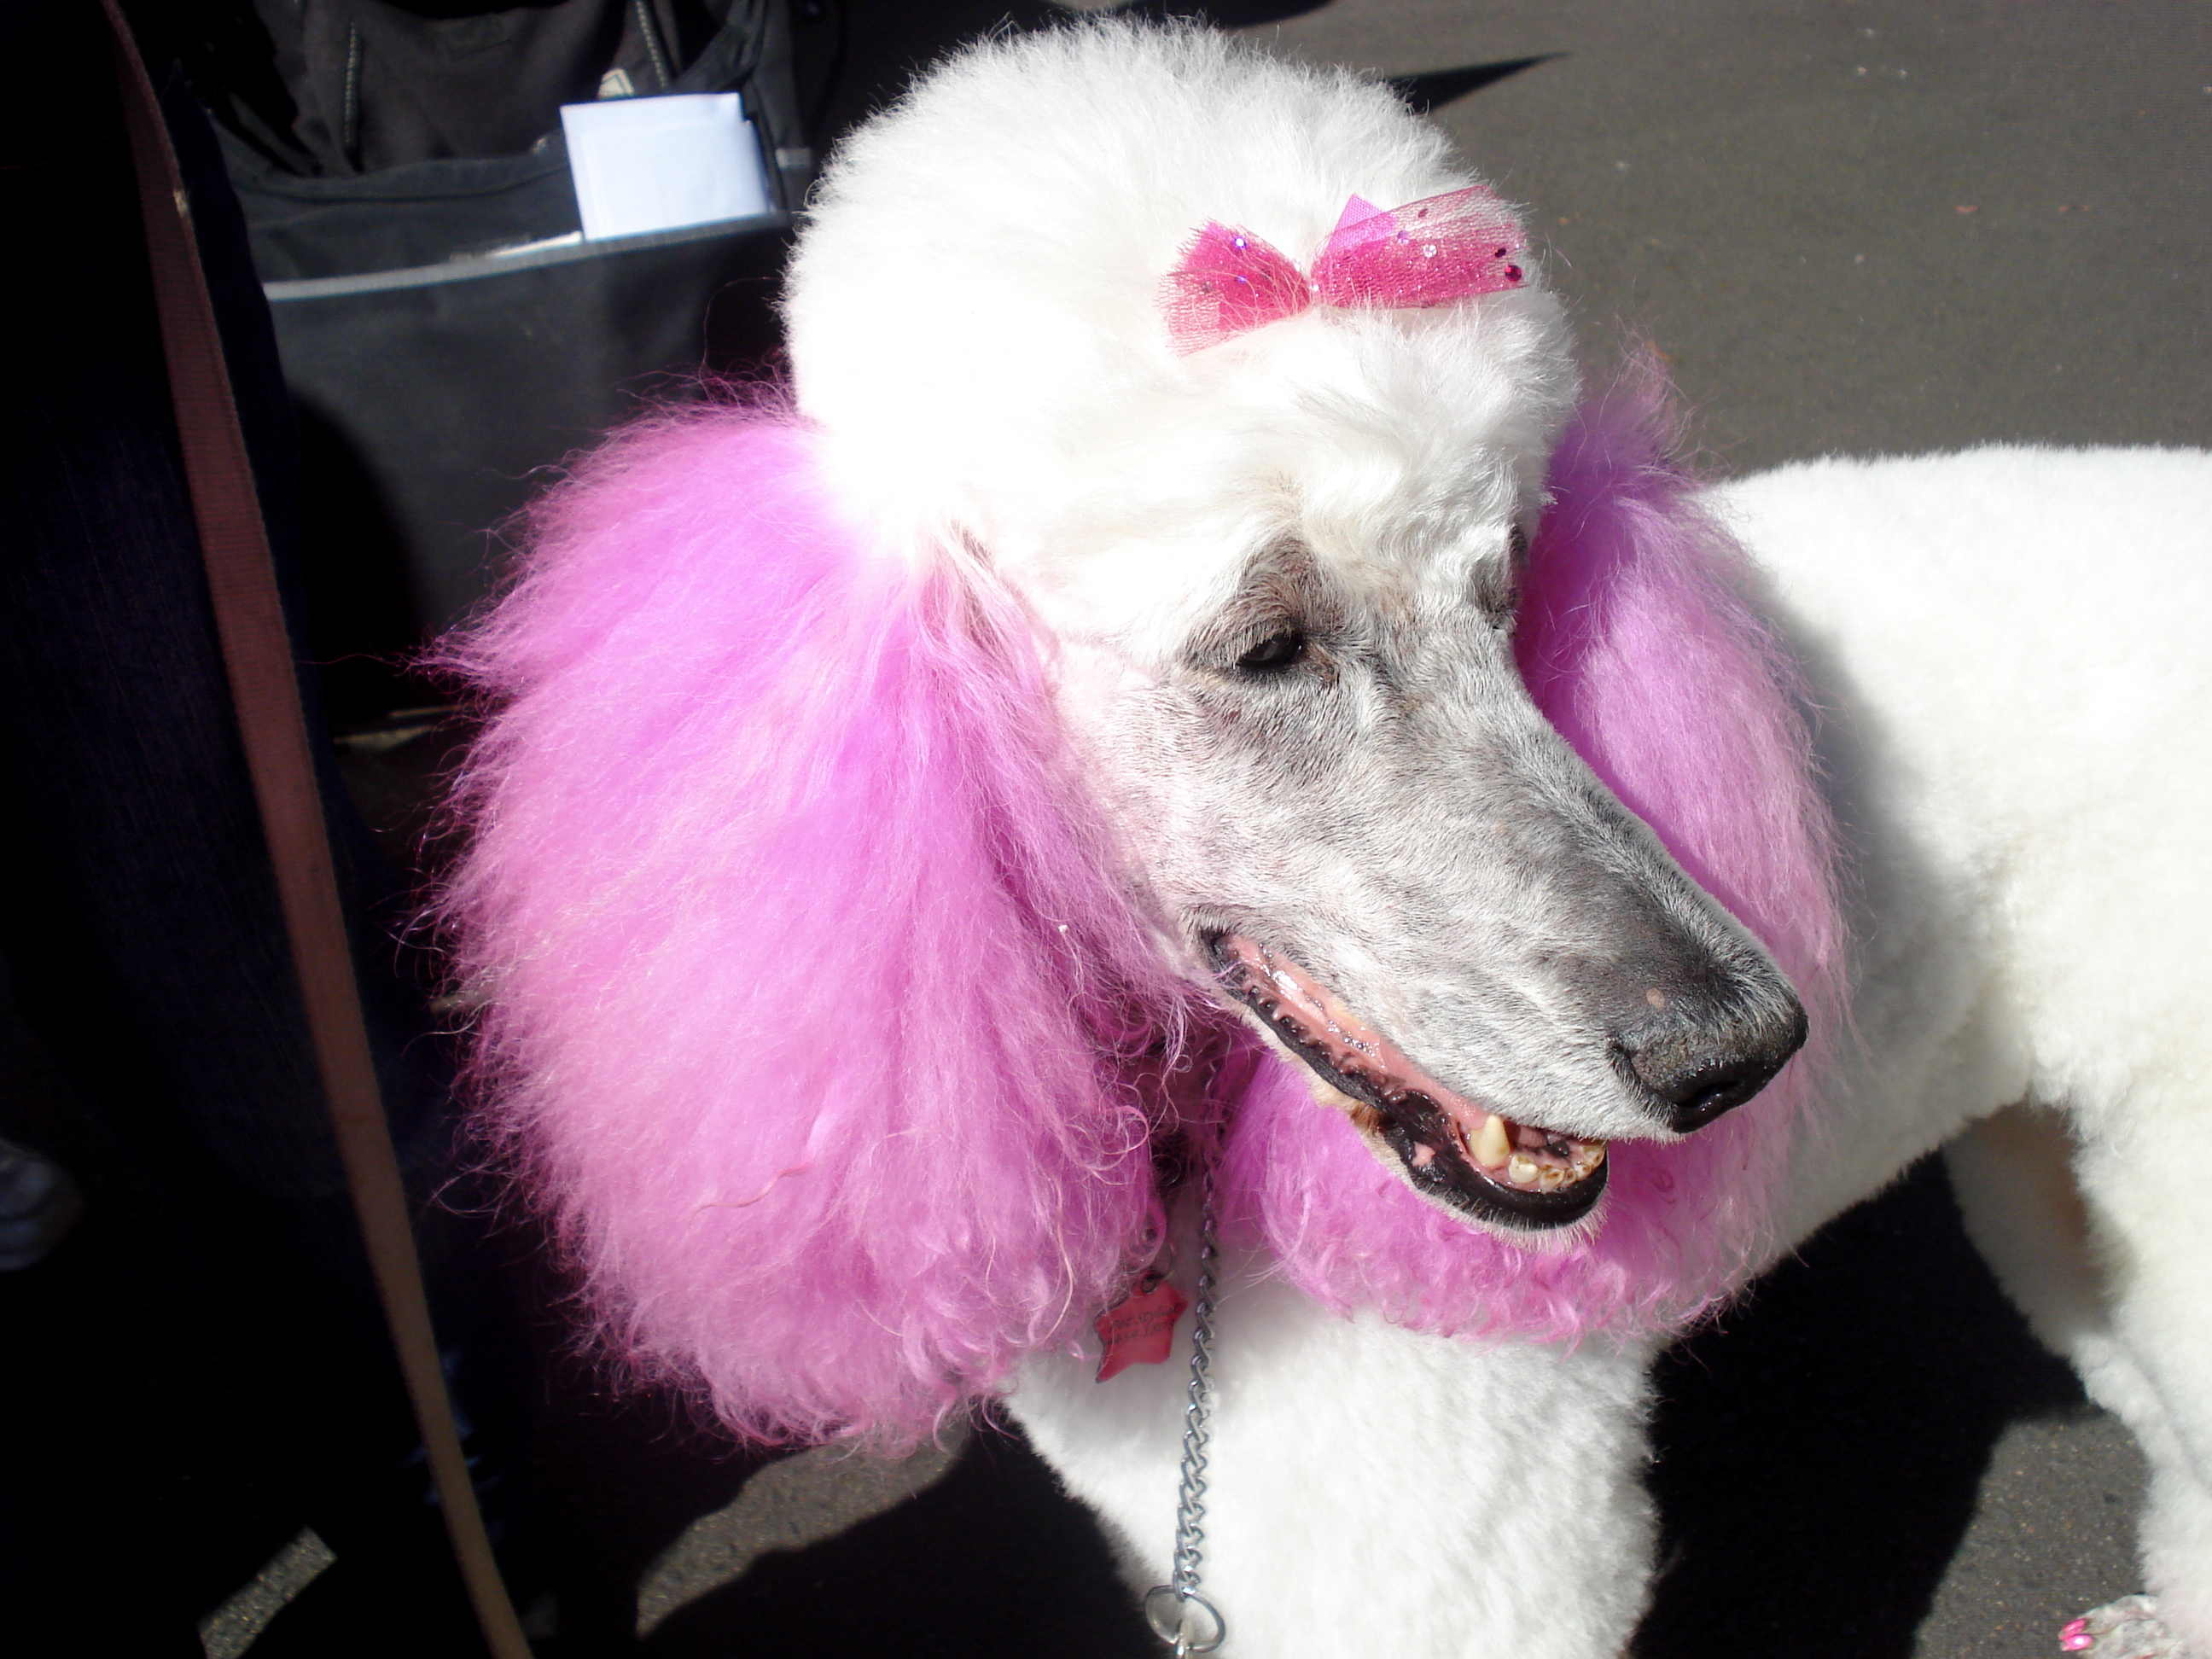 A dog with pink ears